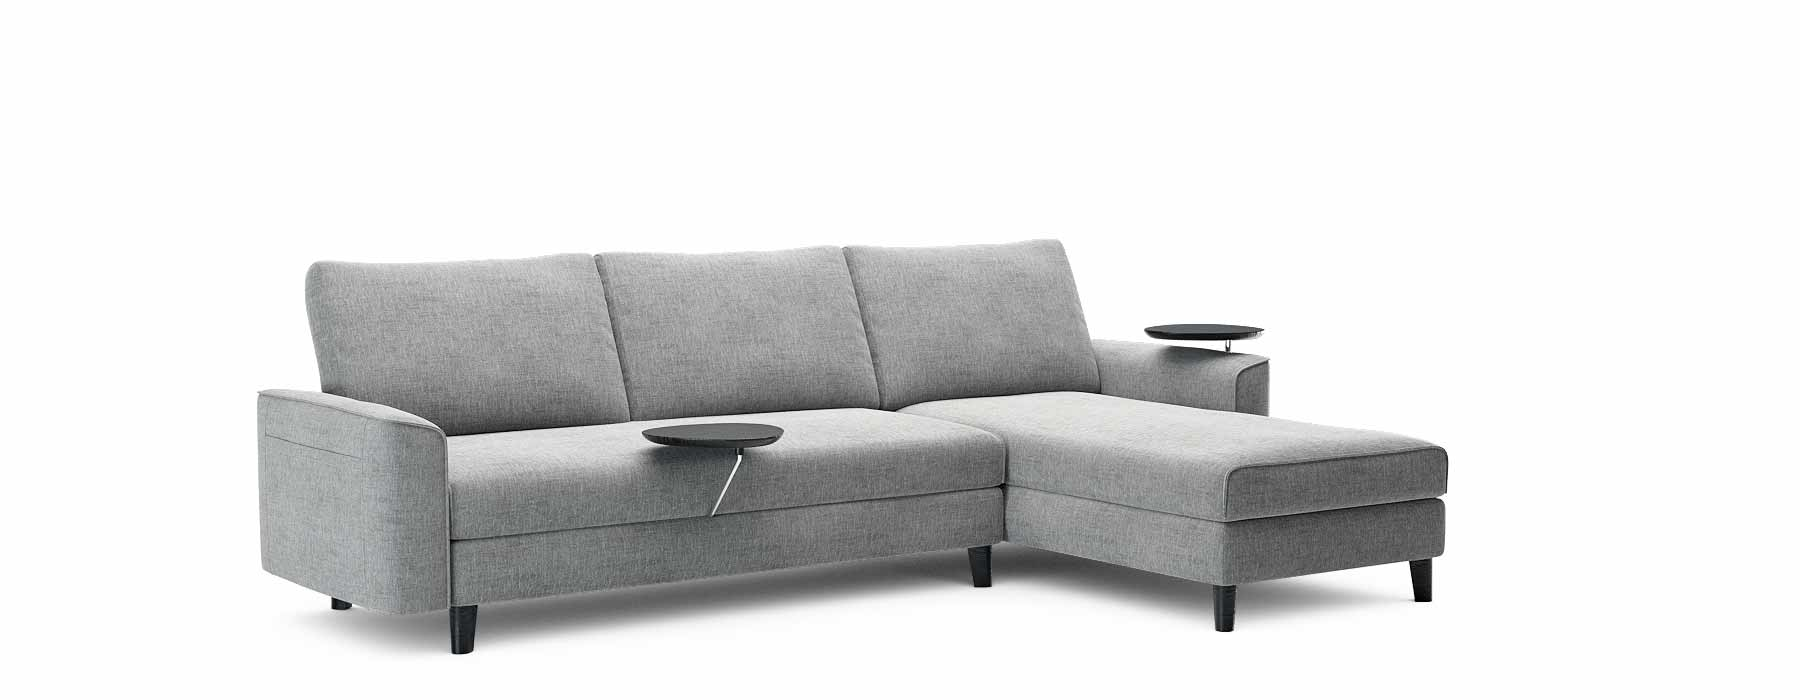 Sofa Arm Tray South Africa Delta Iii Flexible Modular Sofa Lounge Couch King Living